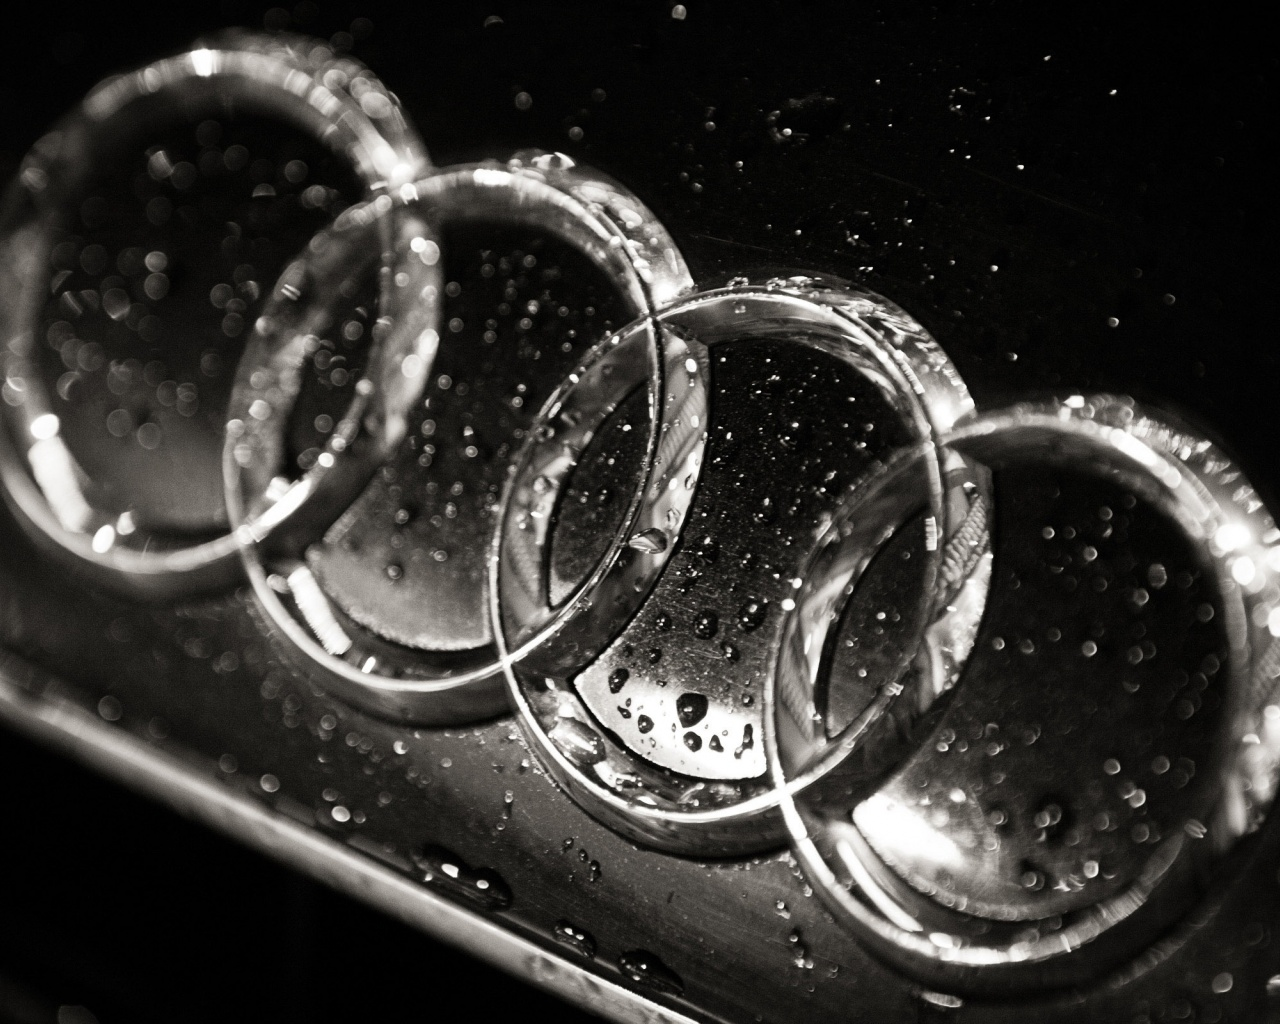 1280x1024 Wet Audi logo, cars